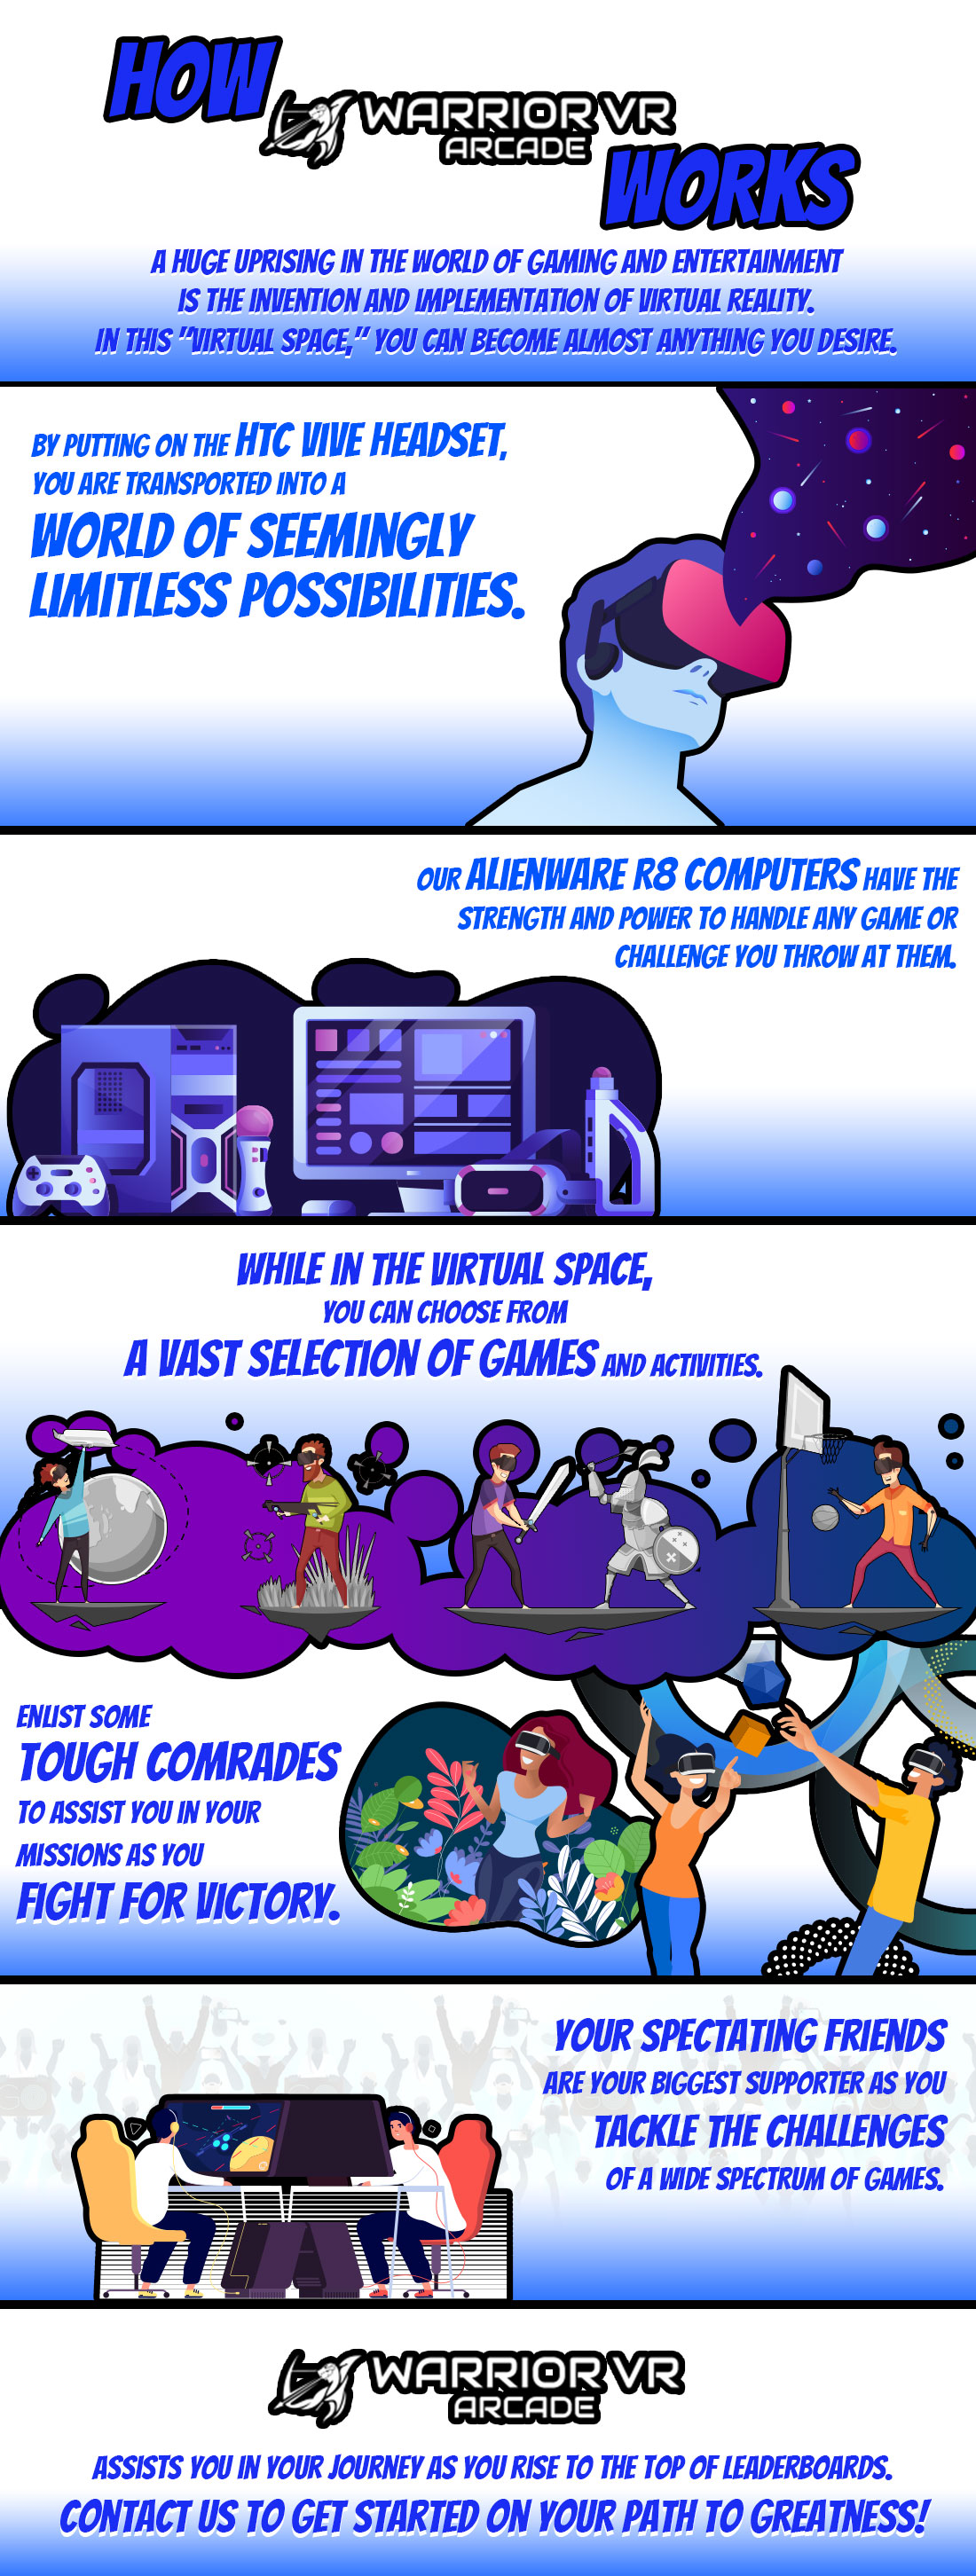 How Warrior VR Arcade Works Infographic